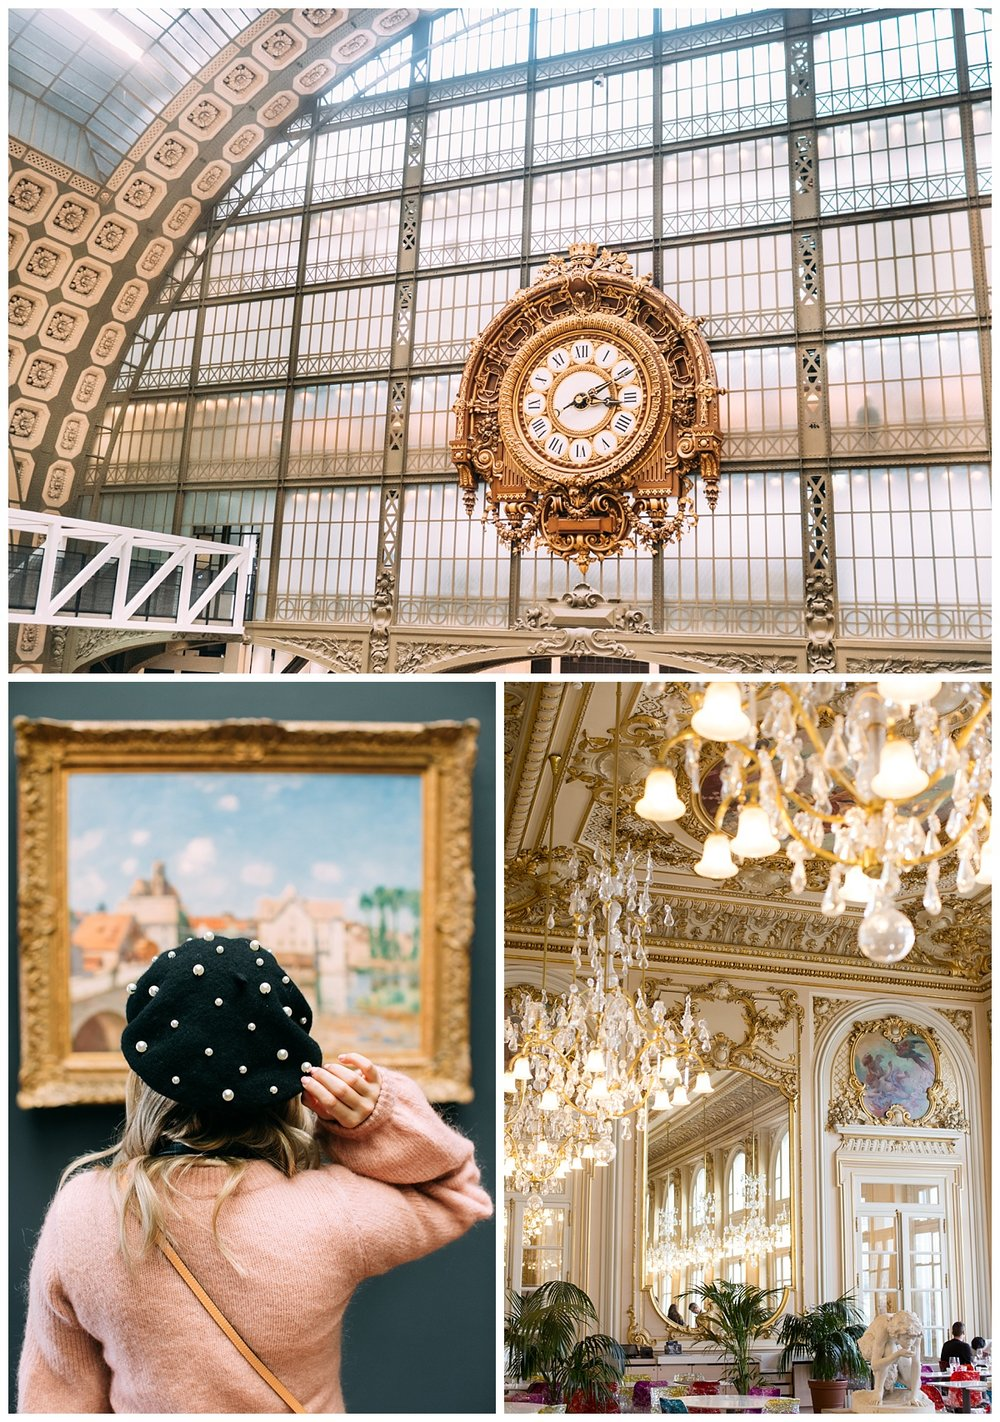 This is Musée d'Orsay. Another museum with beautiful artwork. Check out this extravagant café that was inside. I'm telling you Paris is everything you can dream of.